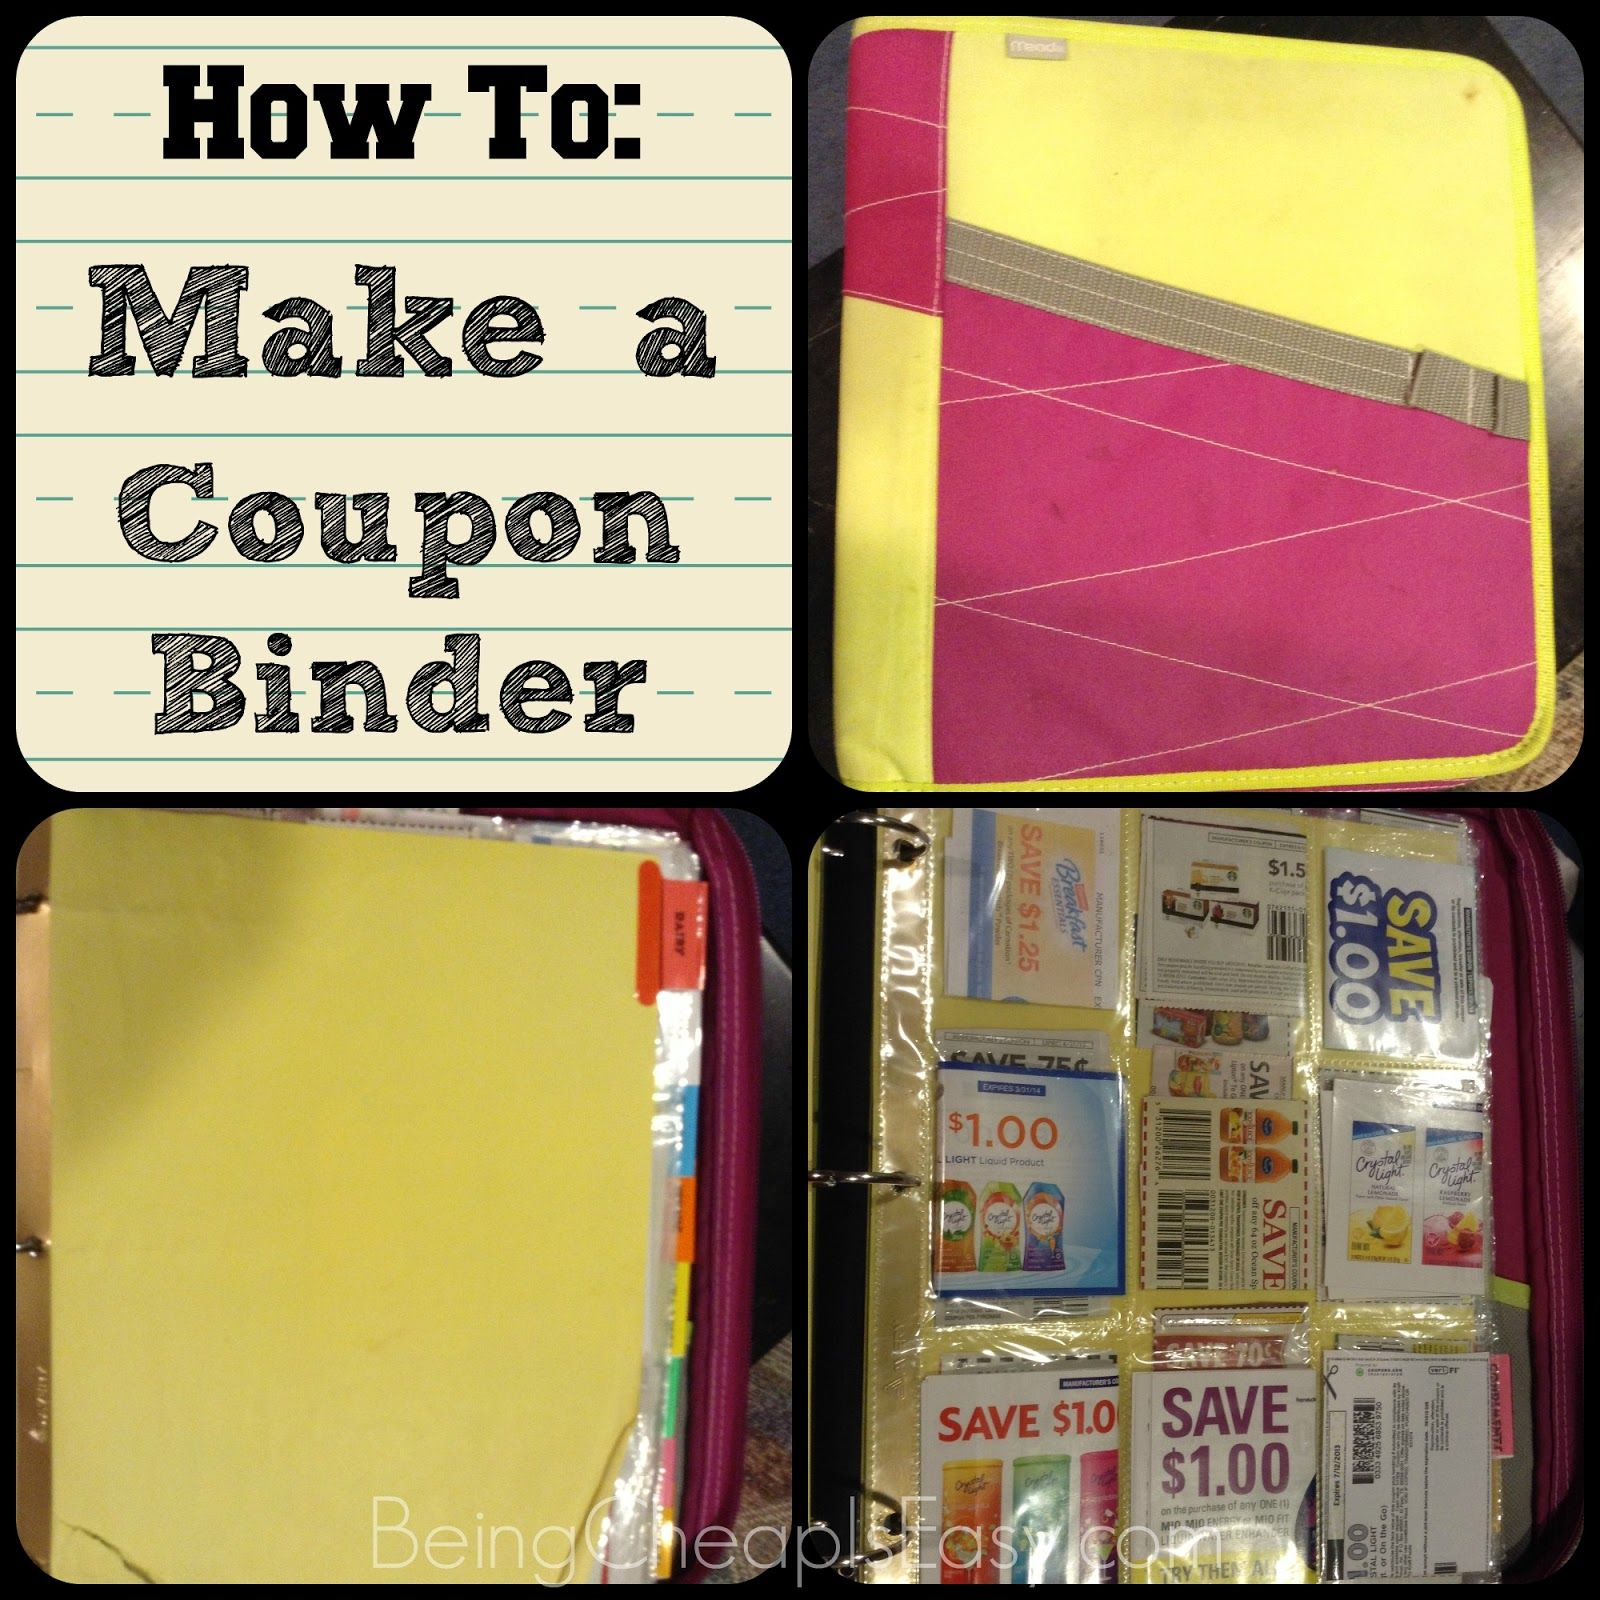 How To Make A Coupon Binder! Saves You SO Much Time While